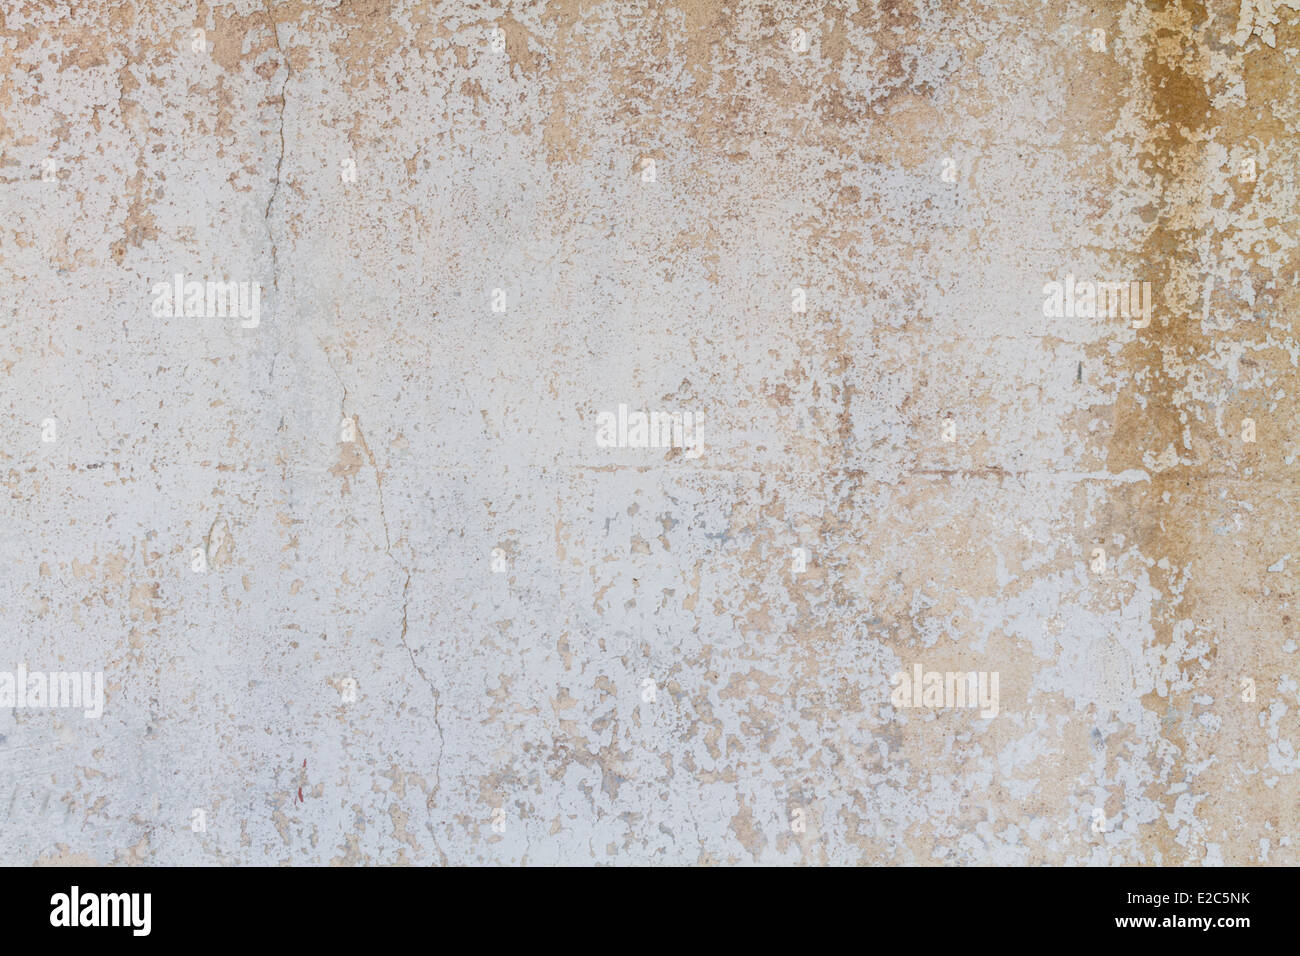 Rough textured peeled paint background. - Stock Image